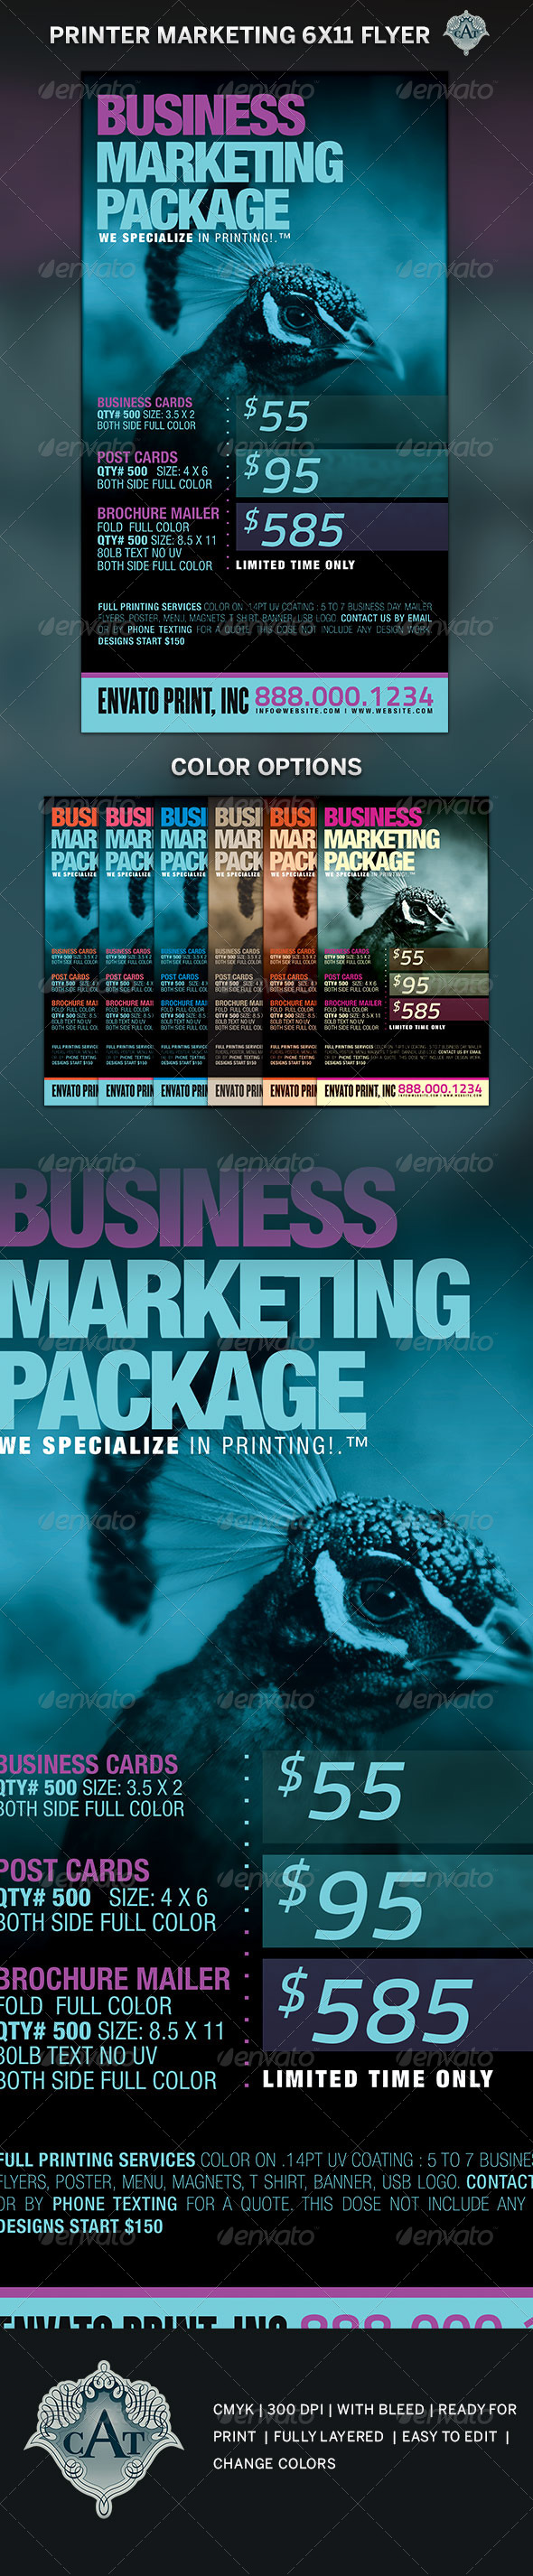 GraphicRiver Printer Marketing Flyer Template 5189583